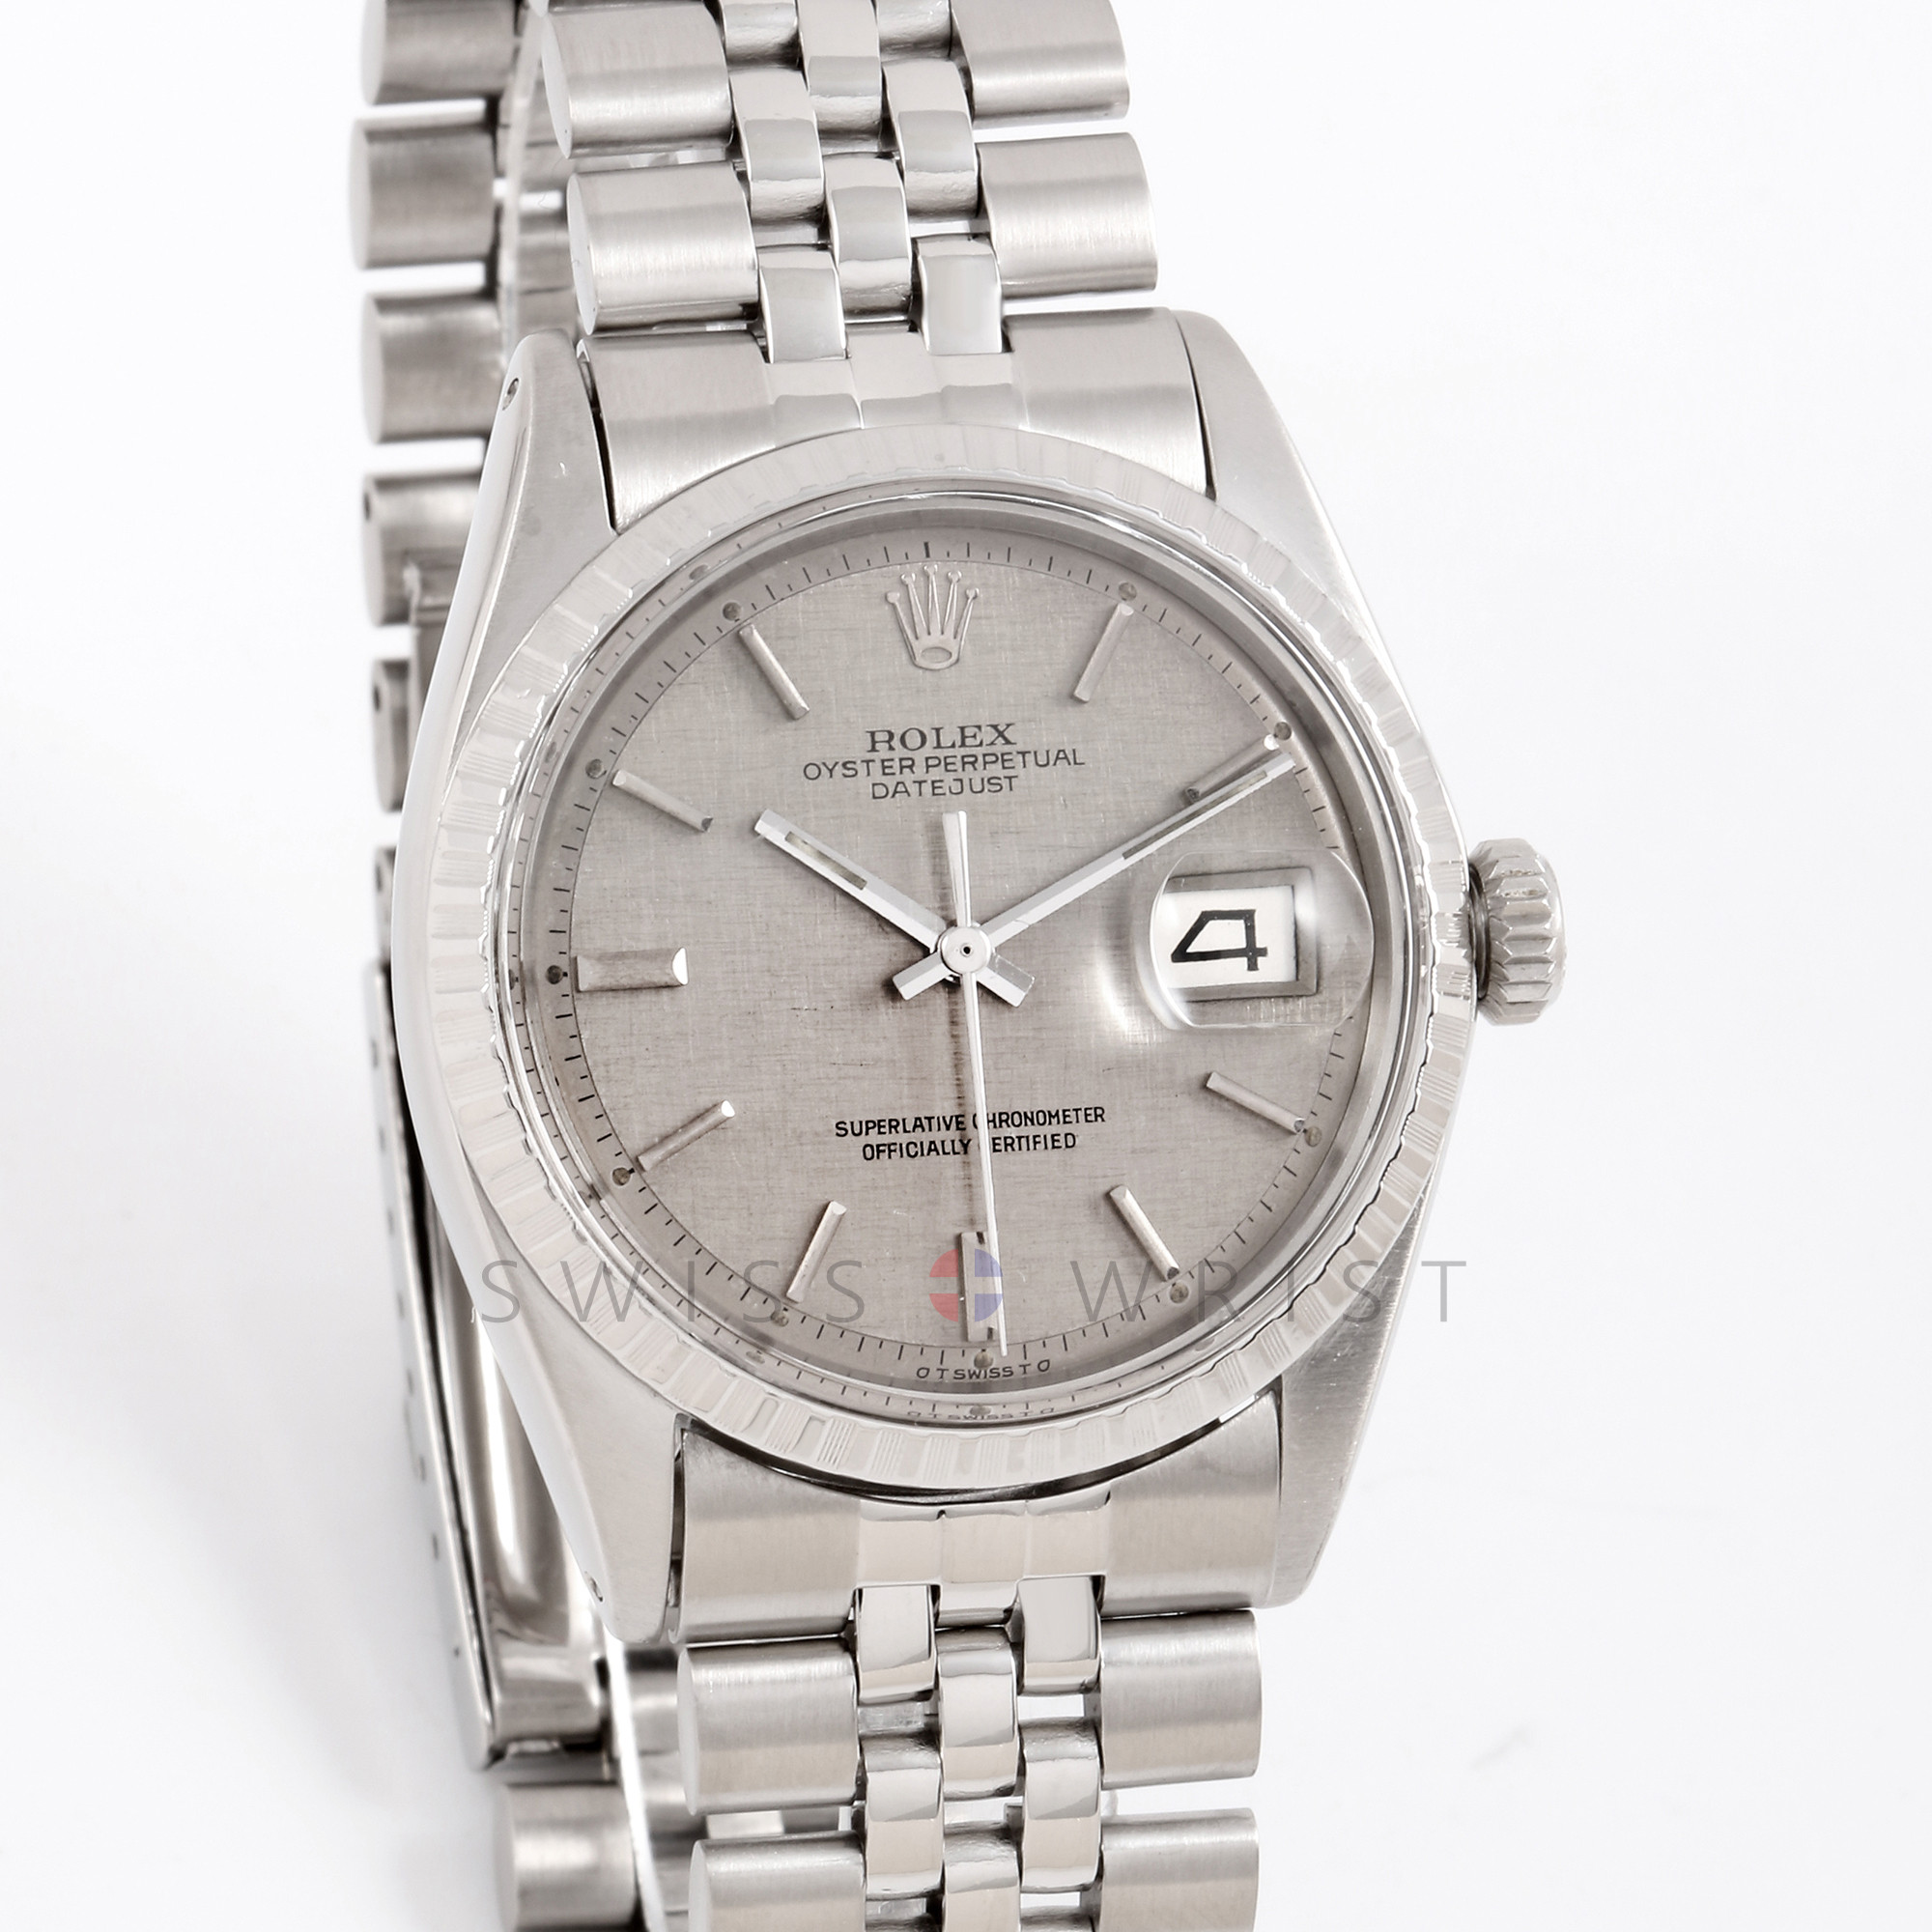 Rolex Datejust 36 mm 1603 Stainless Steel w/ Slate Linen Stick Dial and Engine Turned Bezel with Jubilee Bracelet - Men's Pre-Owned Watch